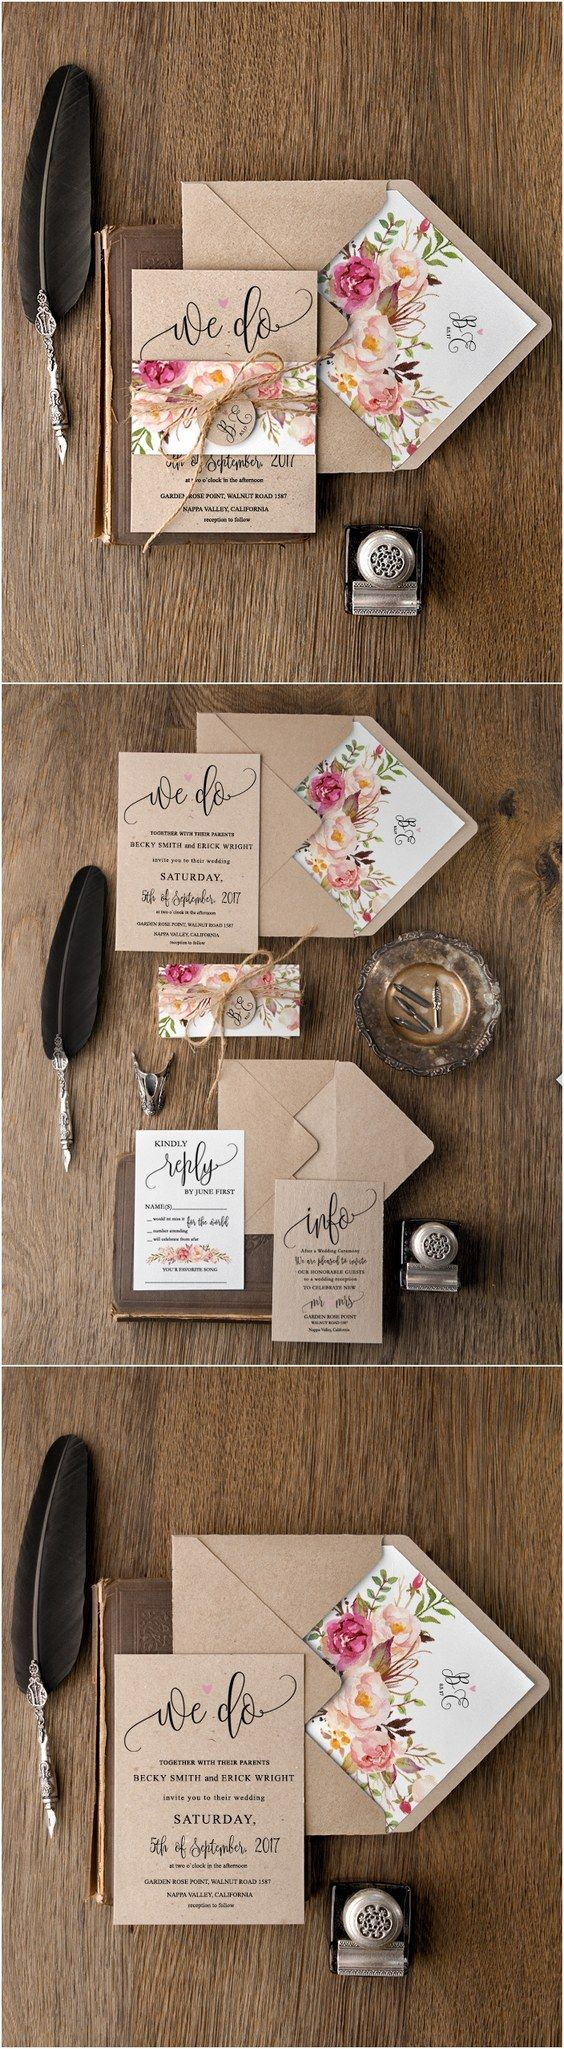 Deer Wedding Invitations 30 Our Absolutely Favorite Rustic Wedding Invitations Deer Pearl